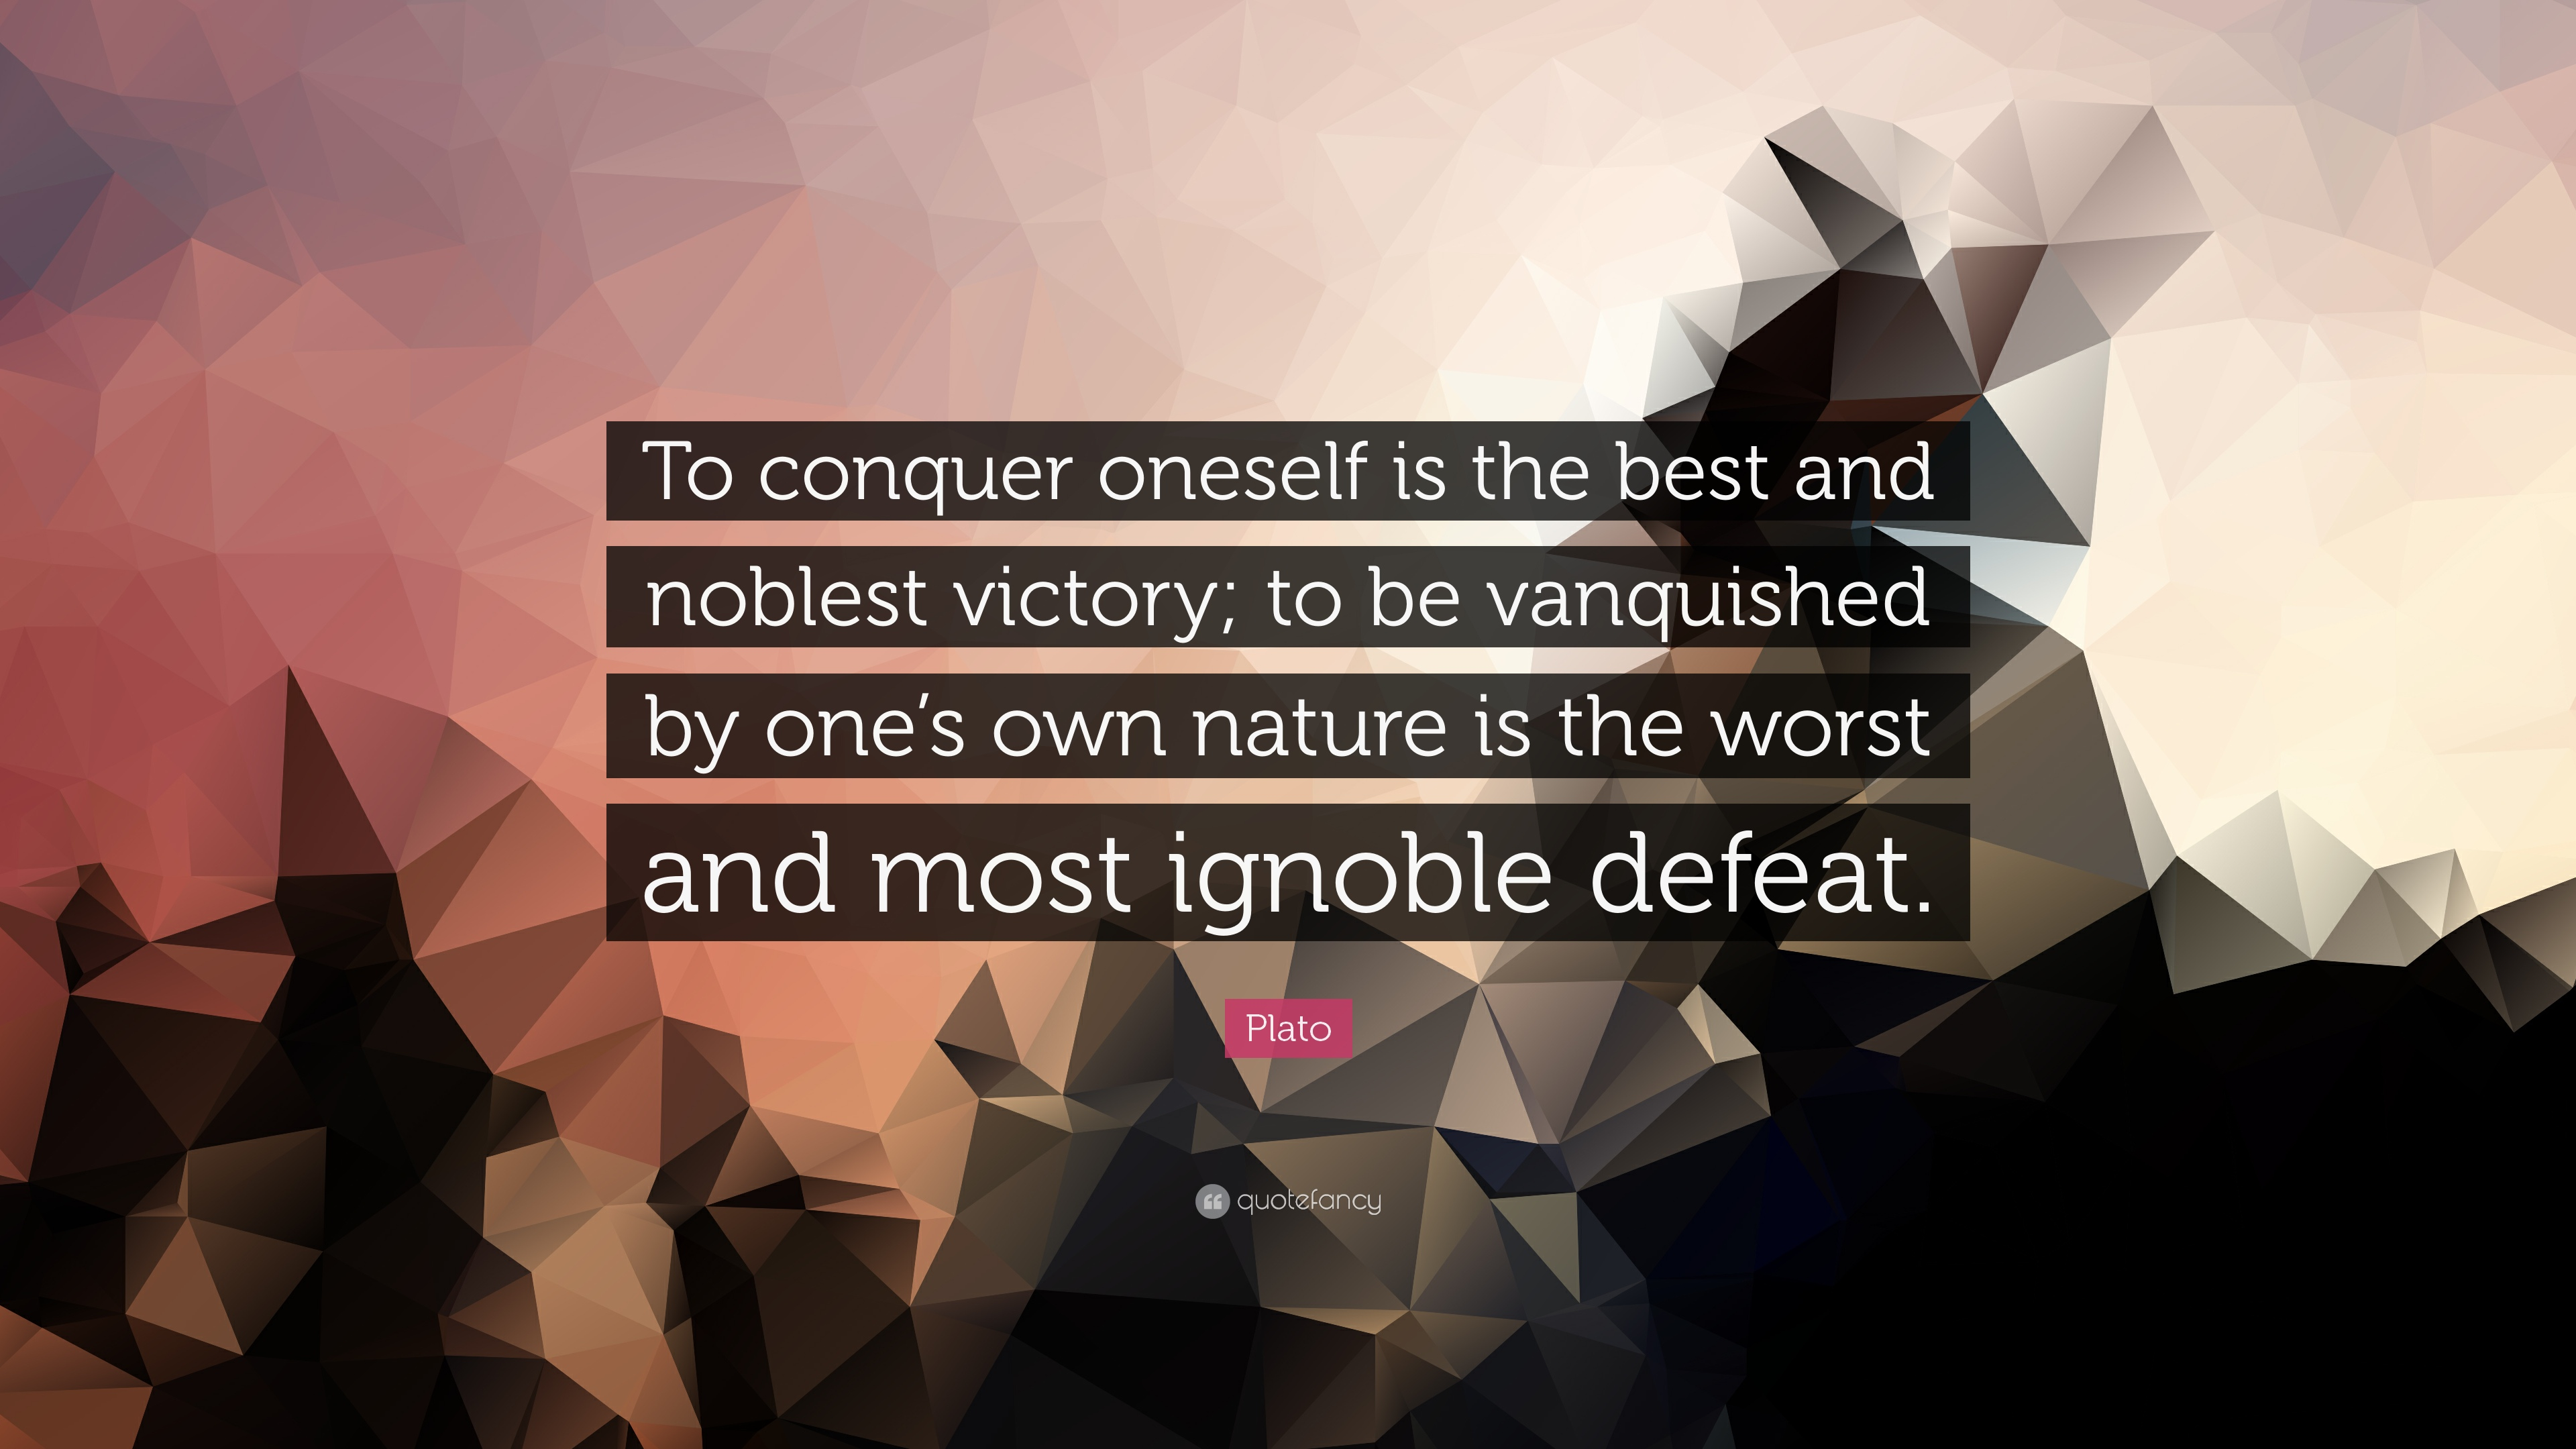 plato quote to conquer oneself is the best and noblest victory plato quote to conquer oneself is the best and noblest victory to be